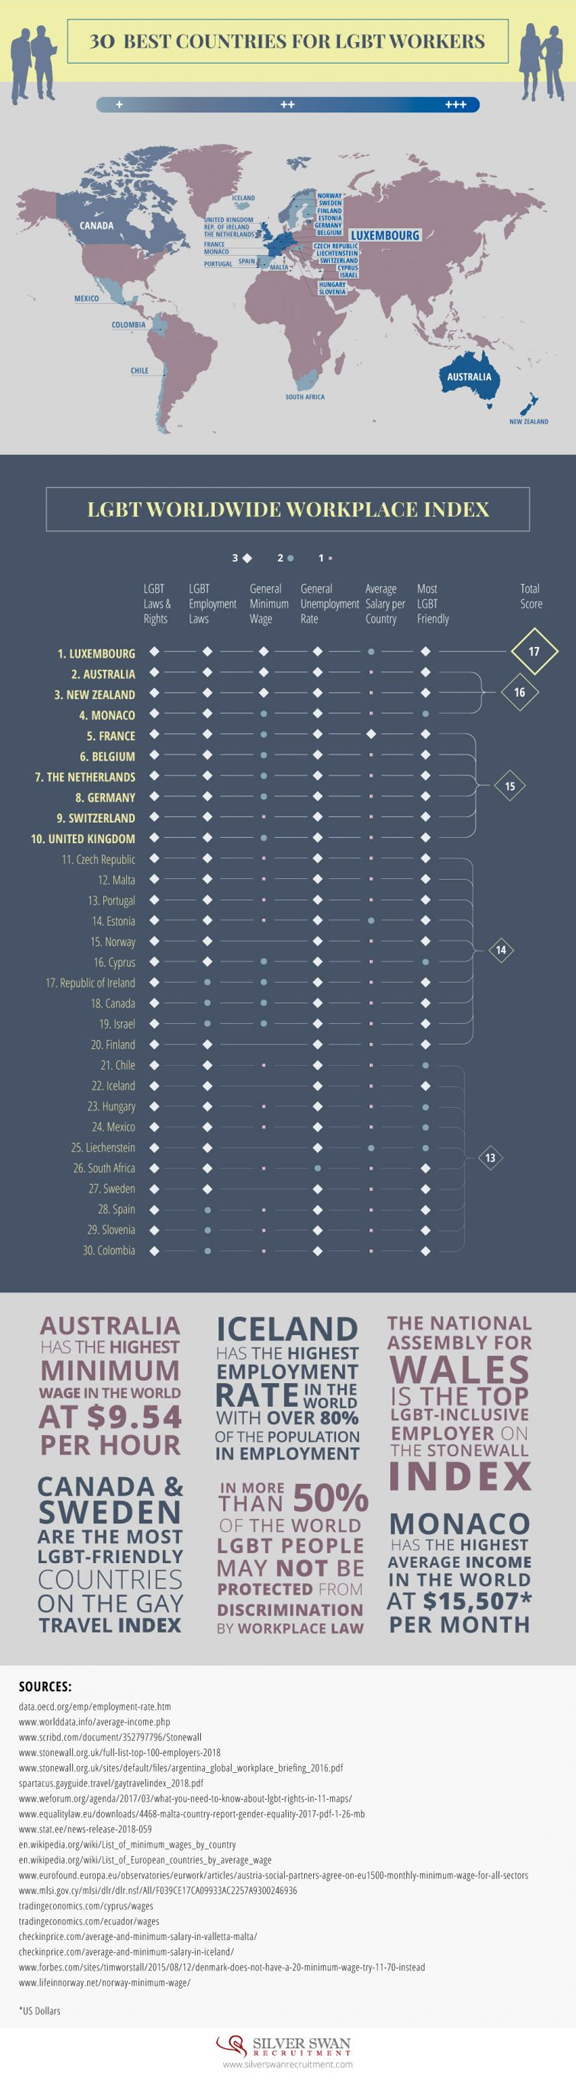 Best countries for LGBT workers